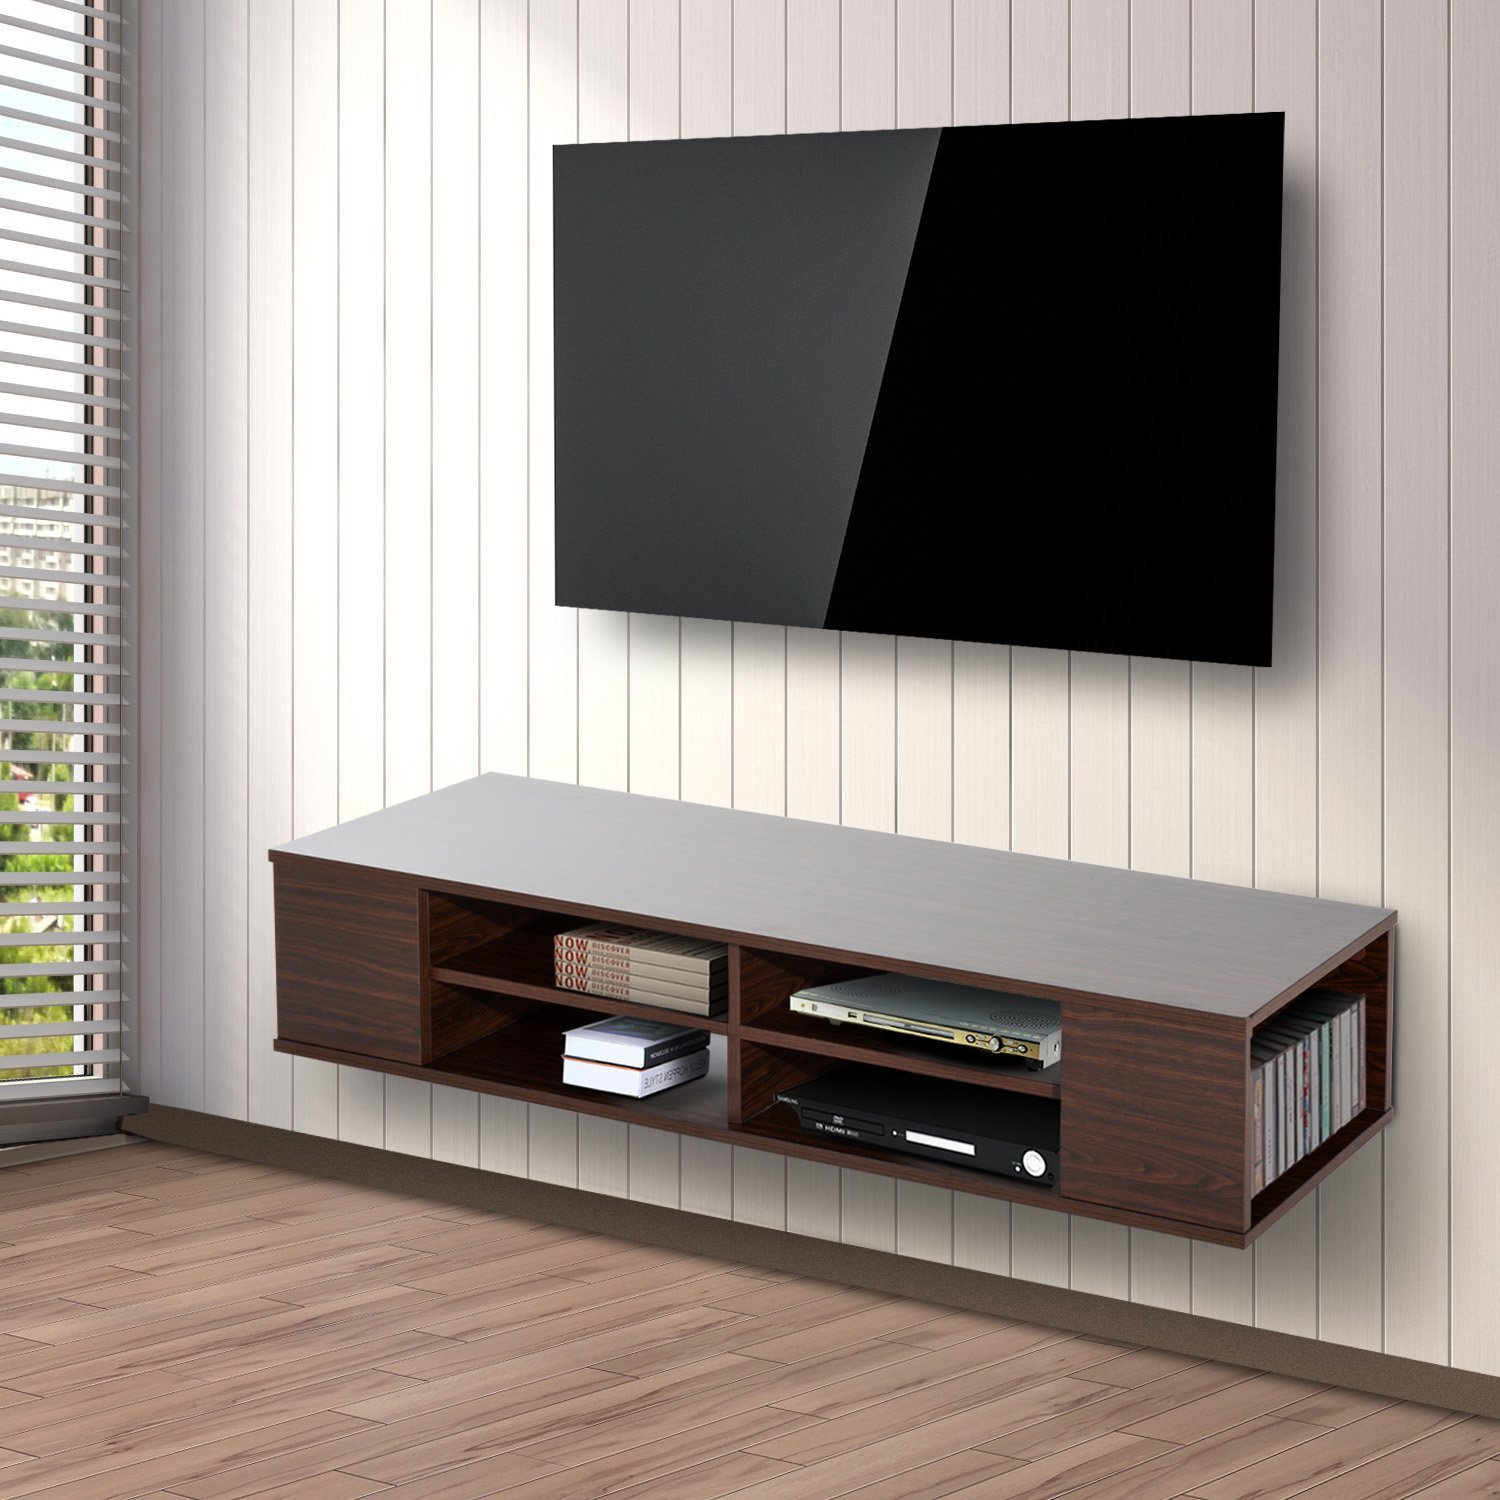 homcom floating tv stand cabinet wall mounted. Black Bedroom Furniture Sets. Home Design Ideas